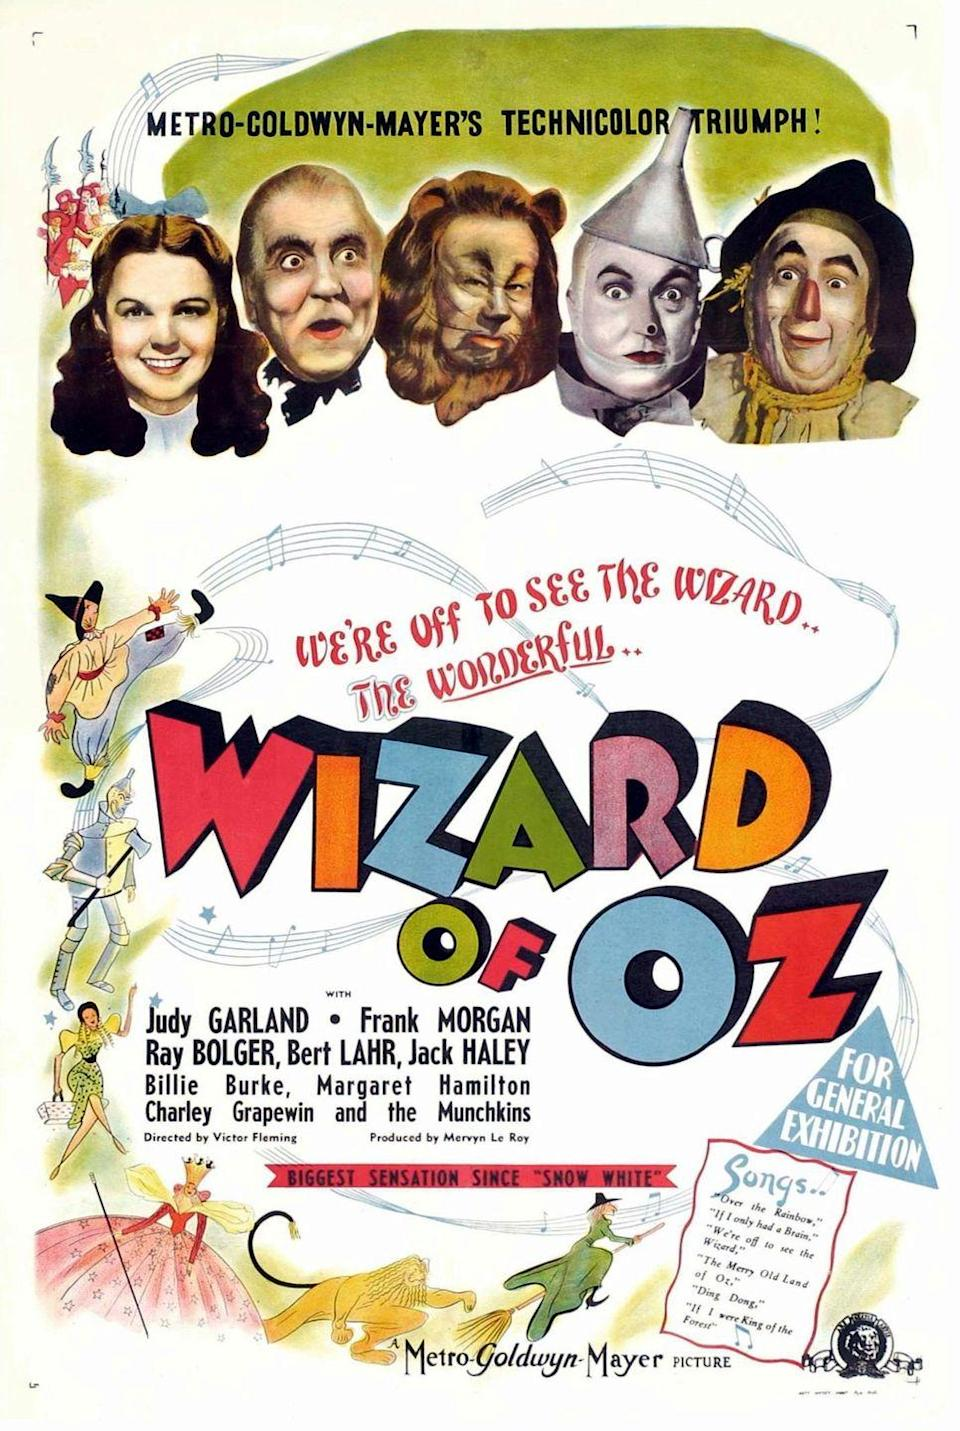 "<p>While it's not an adaptation, the fact that this movie was released in 1939 and people still quote it (and sing the songs) is a testament to how timeless it truly is. It's basically the definition of classic cinema. Dorothy's adventure in Oz and the battle against The Wicked Witch of the West is one of those movies that you have to stop and watch whenever it's on. And we're sure we'll feel similarly when the <a href=""https://www.oprahmag.com/entertainment/a26256094/wicked-movie-dream-cast/"" rel=""nofollow noopener"" target=""_blank"" data-ylk=""slk:Wicked movie"" class=""link rapid-noclick-resp""><em>Wicked</em> movie</a> is released.</p><p><a class=""link rapid-noclick-resp"" href=""https://www.amazon.com/Wizard-Oz-Judy-Garland/dp/B002QRBB30?tag=syn-yahoo-20&ascsubtag=%5Bartid%7C10063.g.34344525%5Bsrc%7Cyahoo-us"" rel=""nofollow noopener"" target=""_blank"" data-ylk=""slk:WATCH NOW"">WATCH NOW</a></p>"